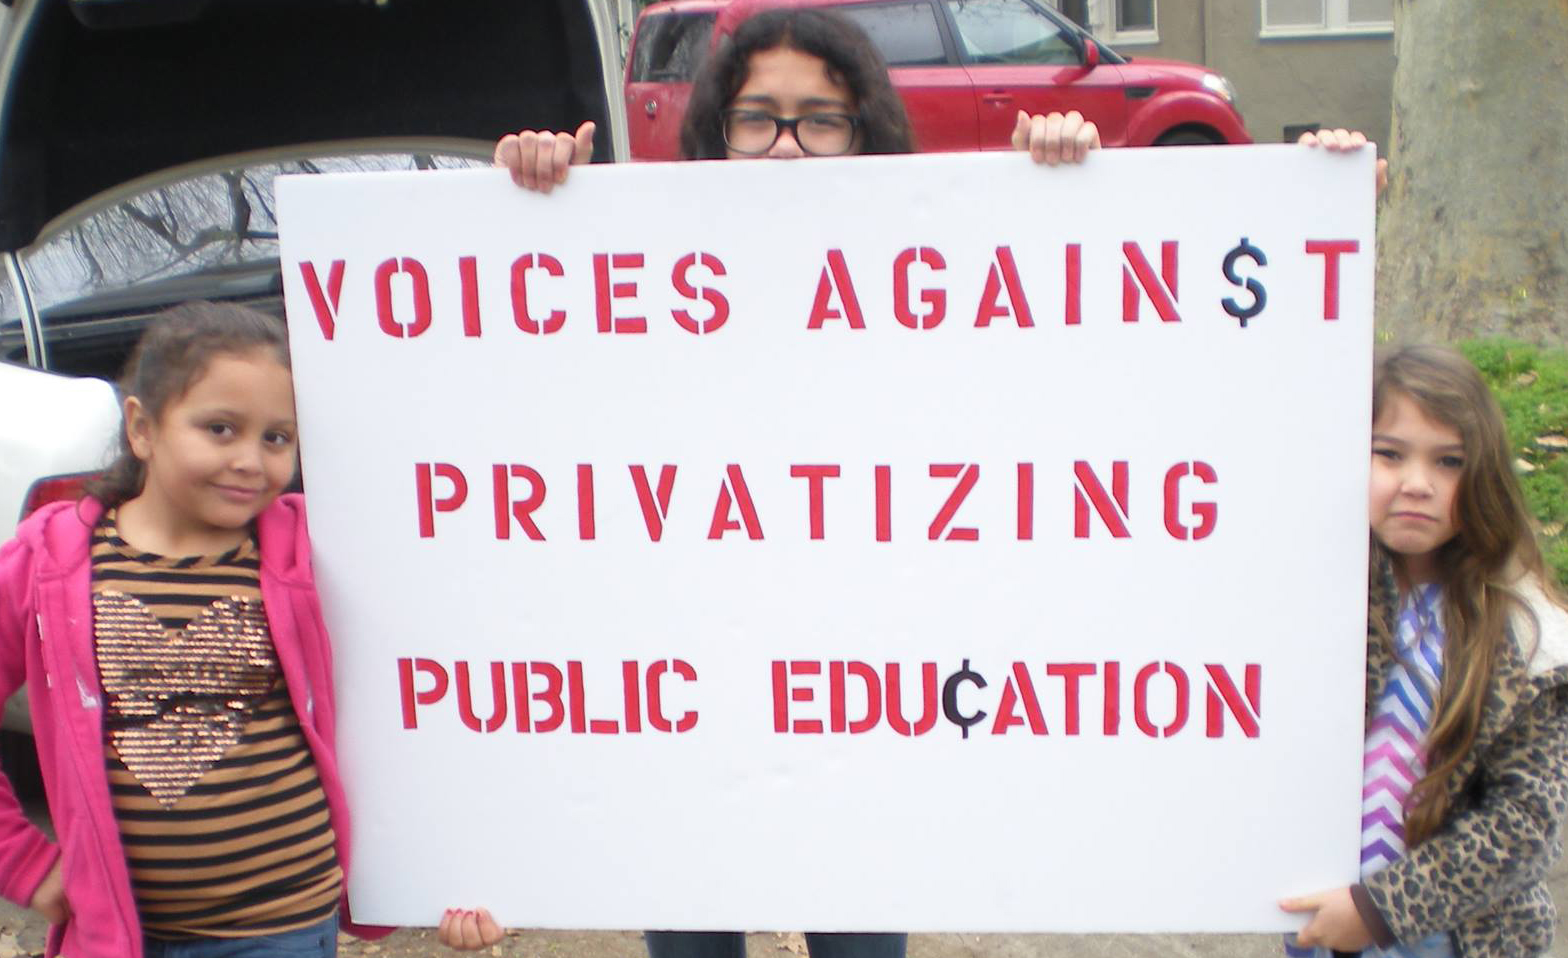 Voices Against Privatizing Public Education